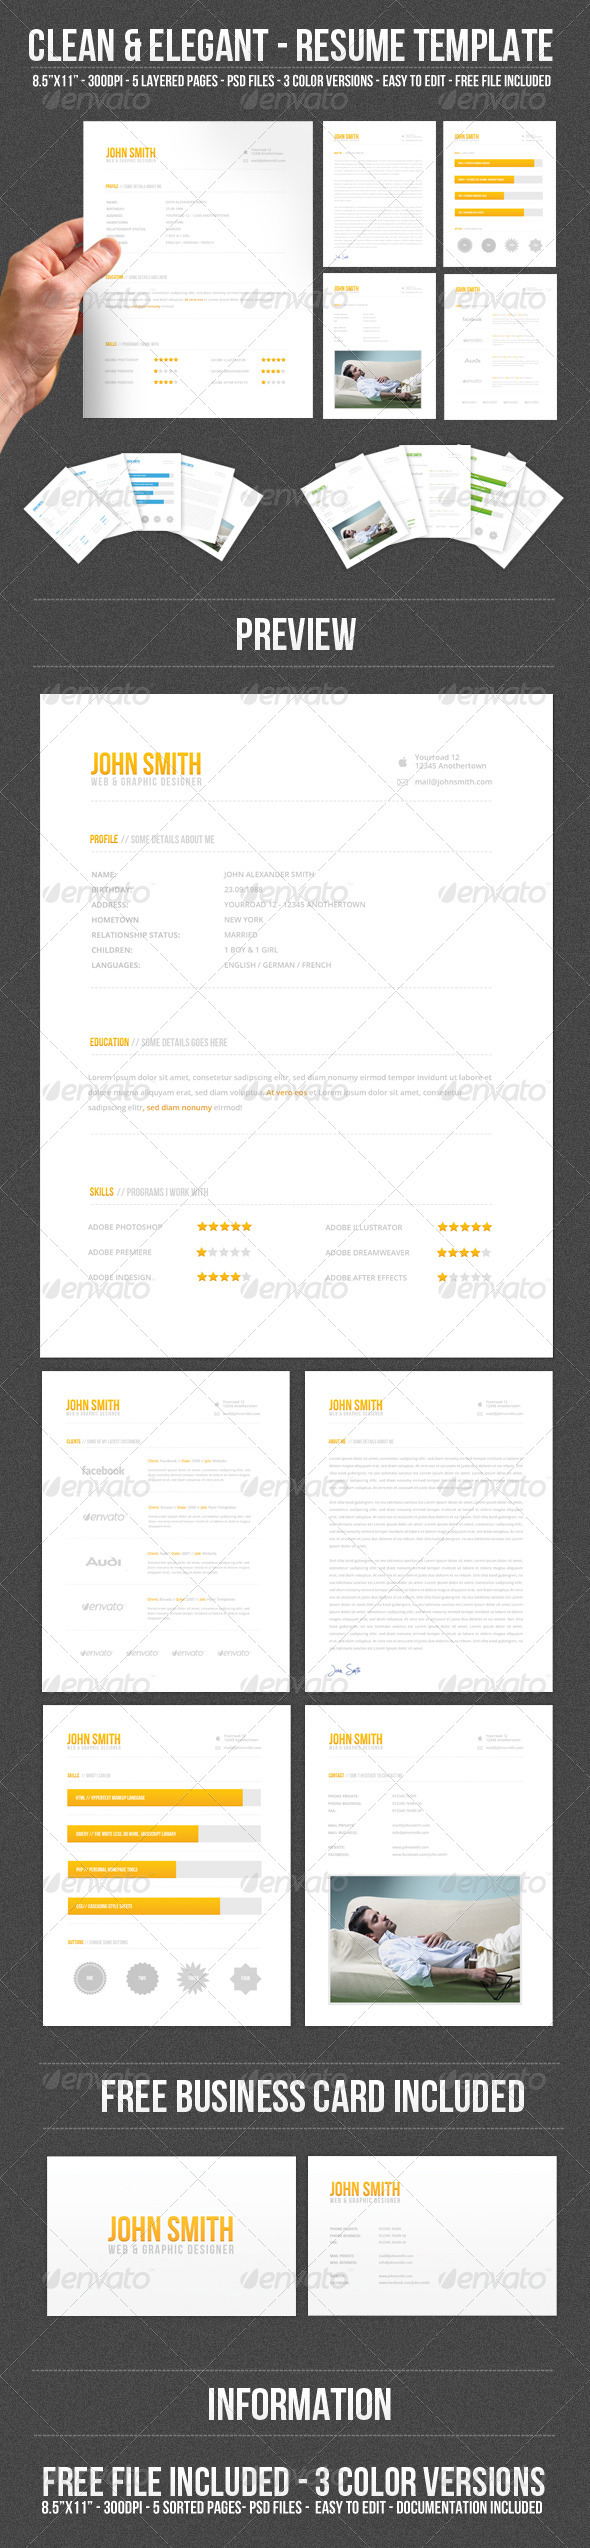 Clean & Elegant - Resume Template - Resumes Stationery